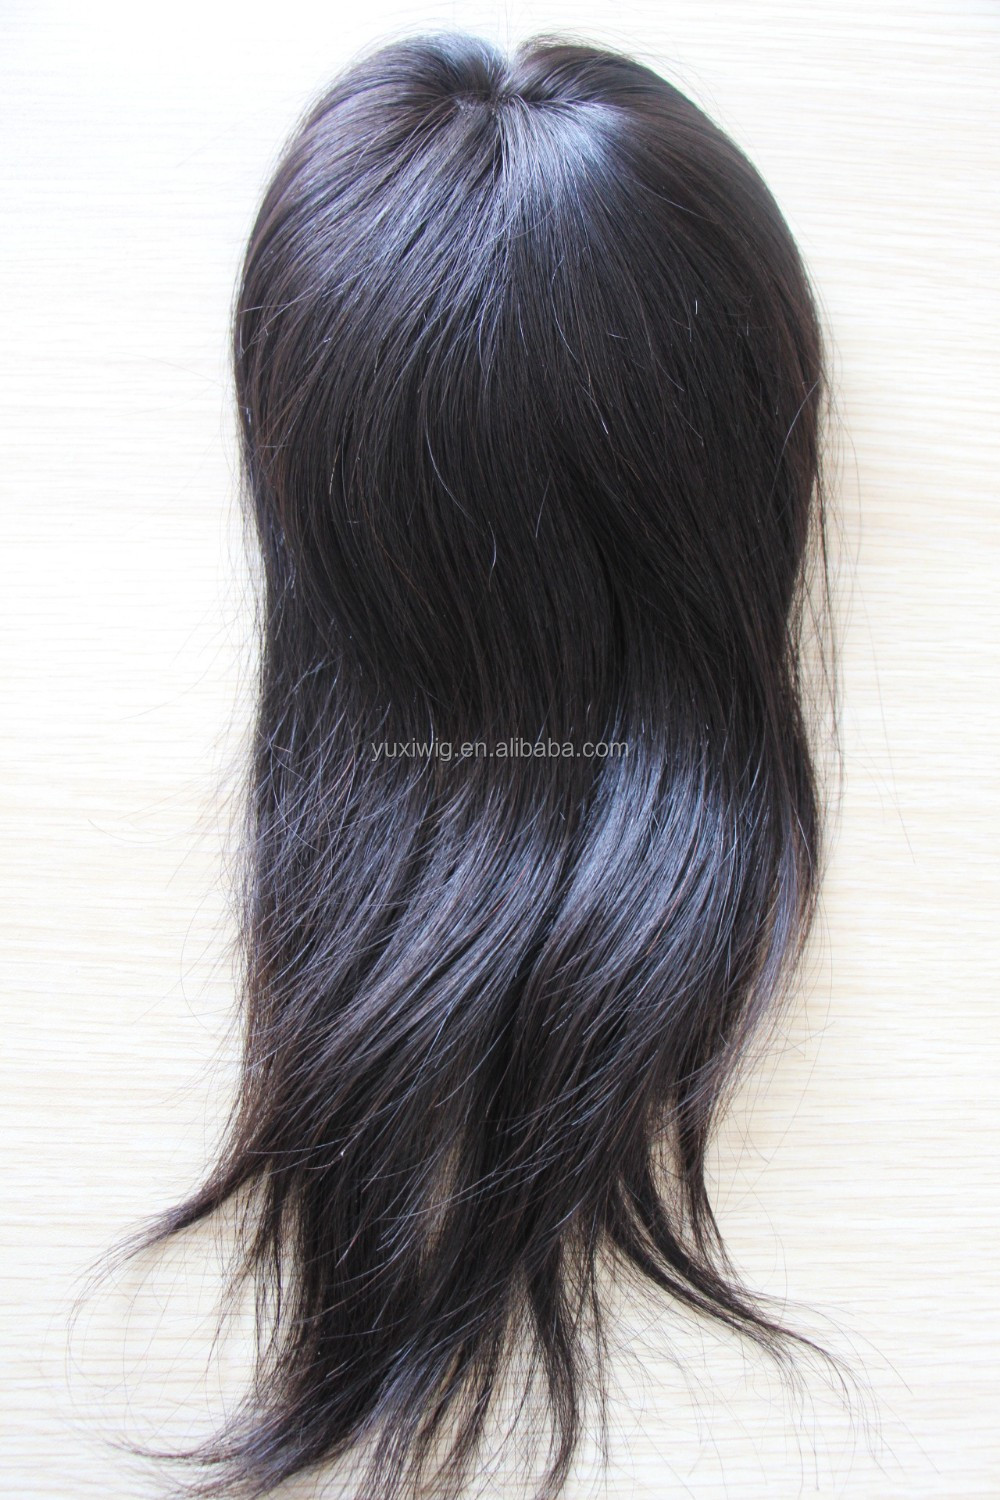 2016 New Hair Topper,Hair Touppe For Black Women